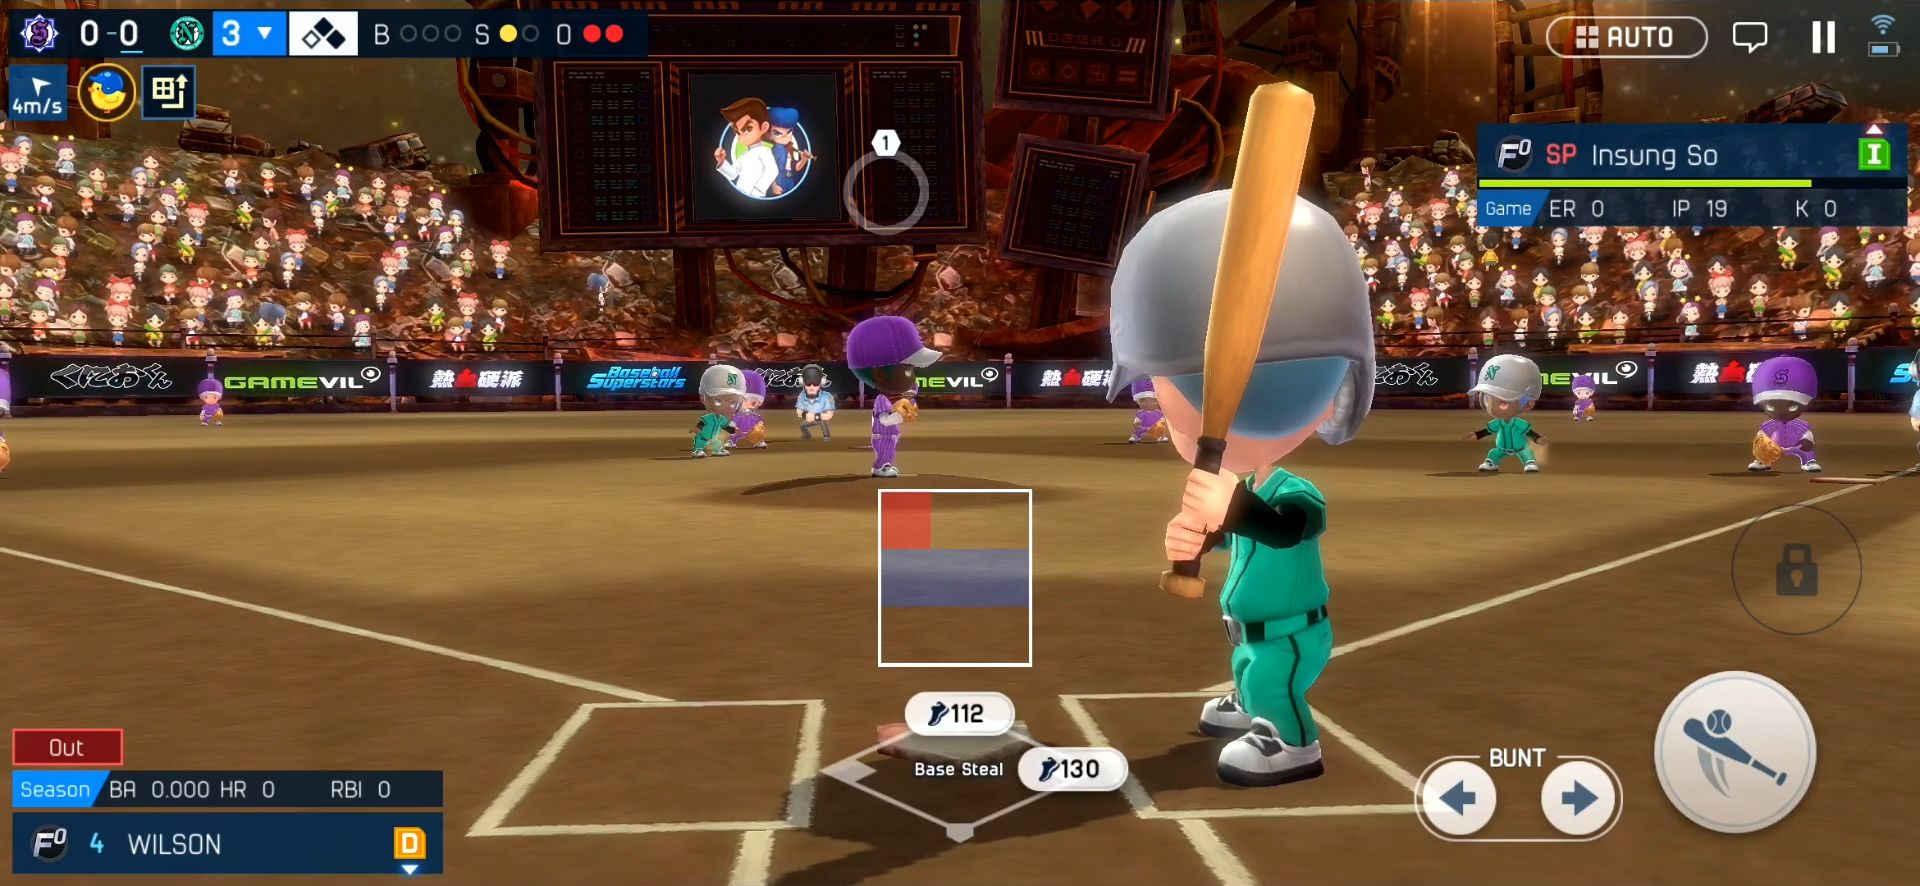 Baseball Superstars 2020 screenshot 1